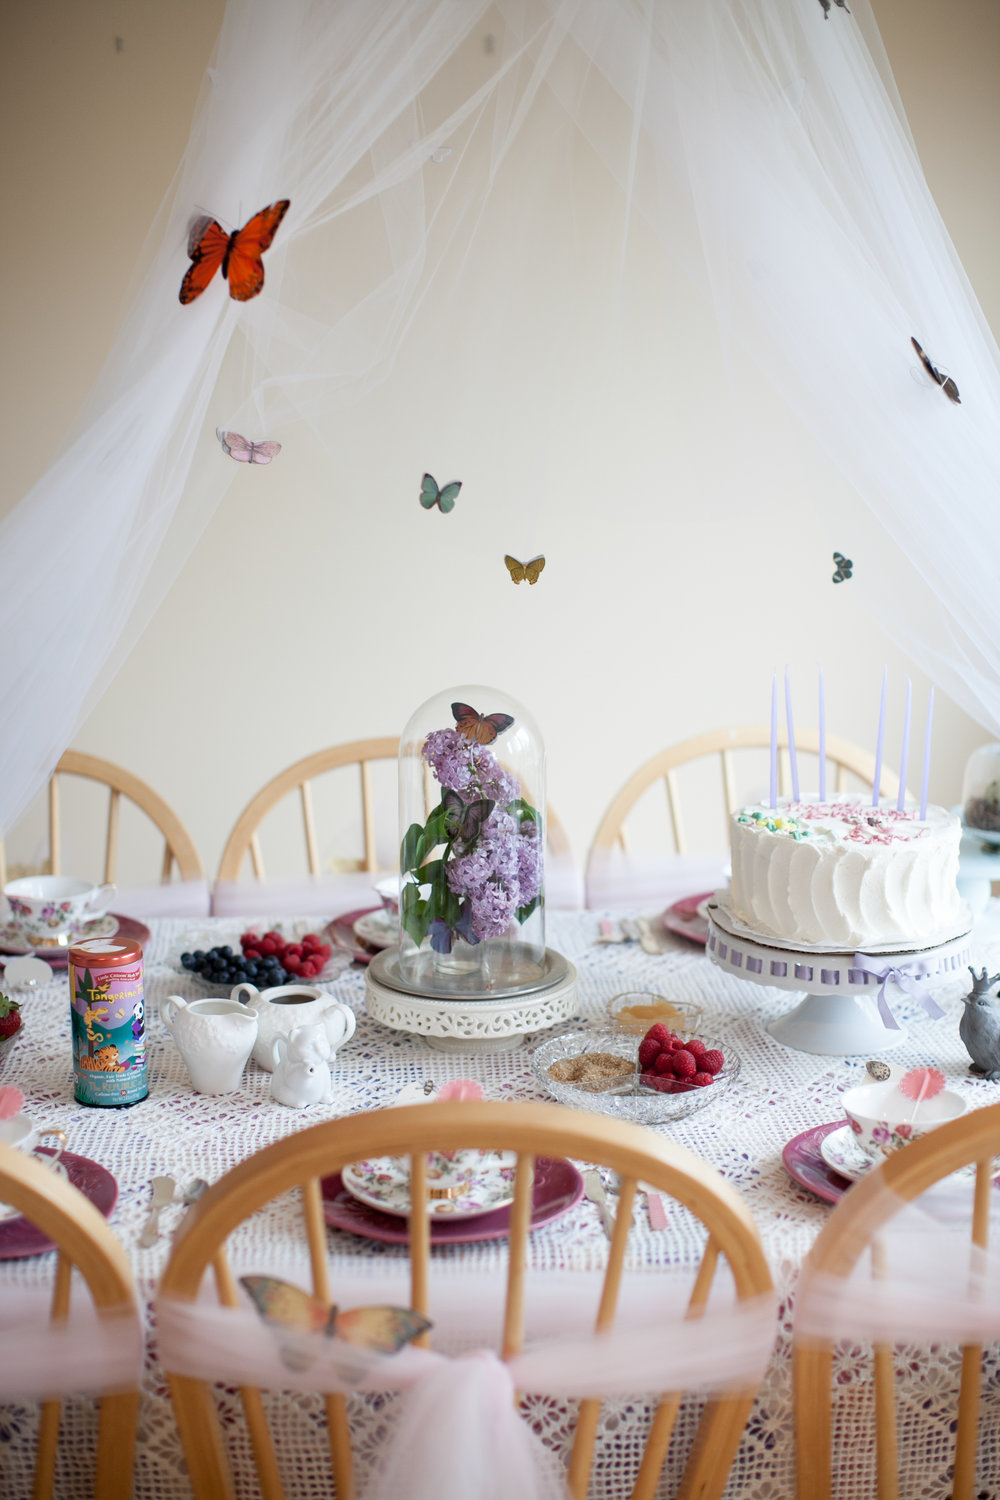 butterfly_tea_party_0014.jpg